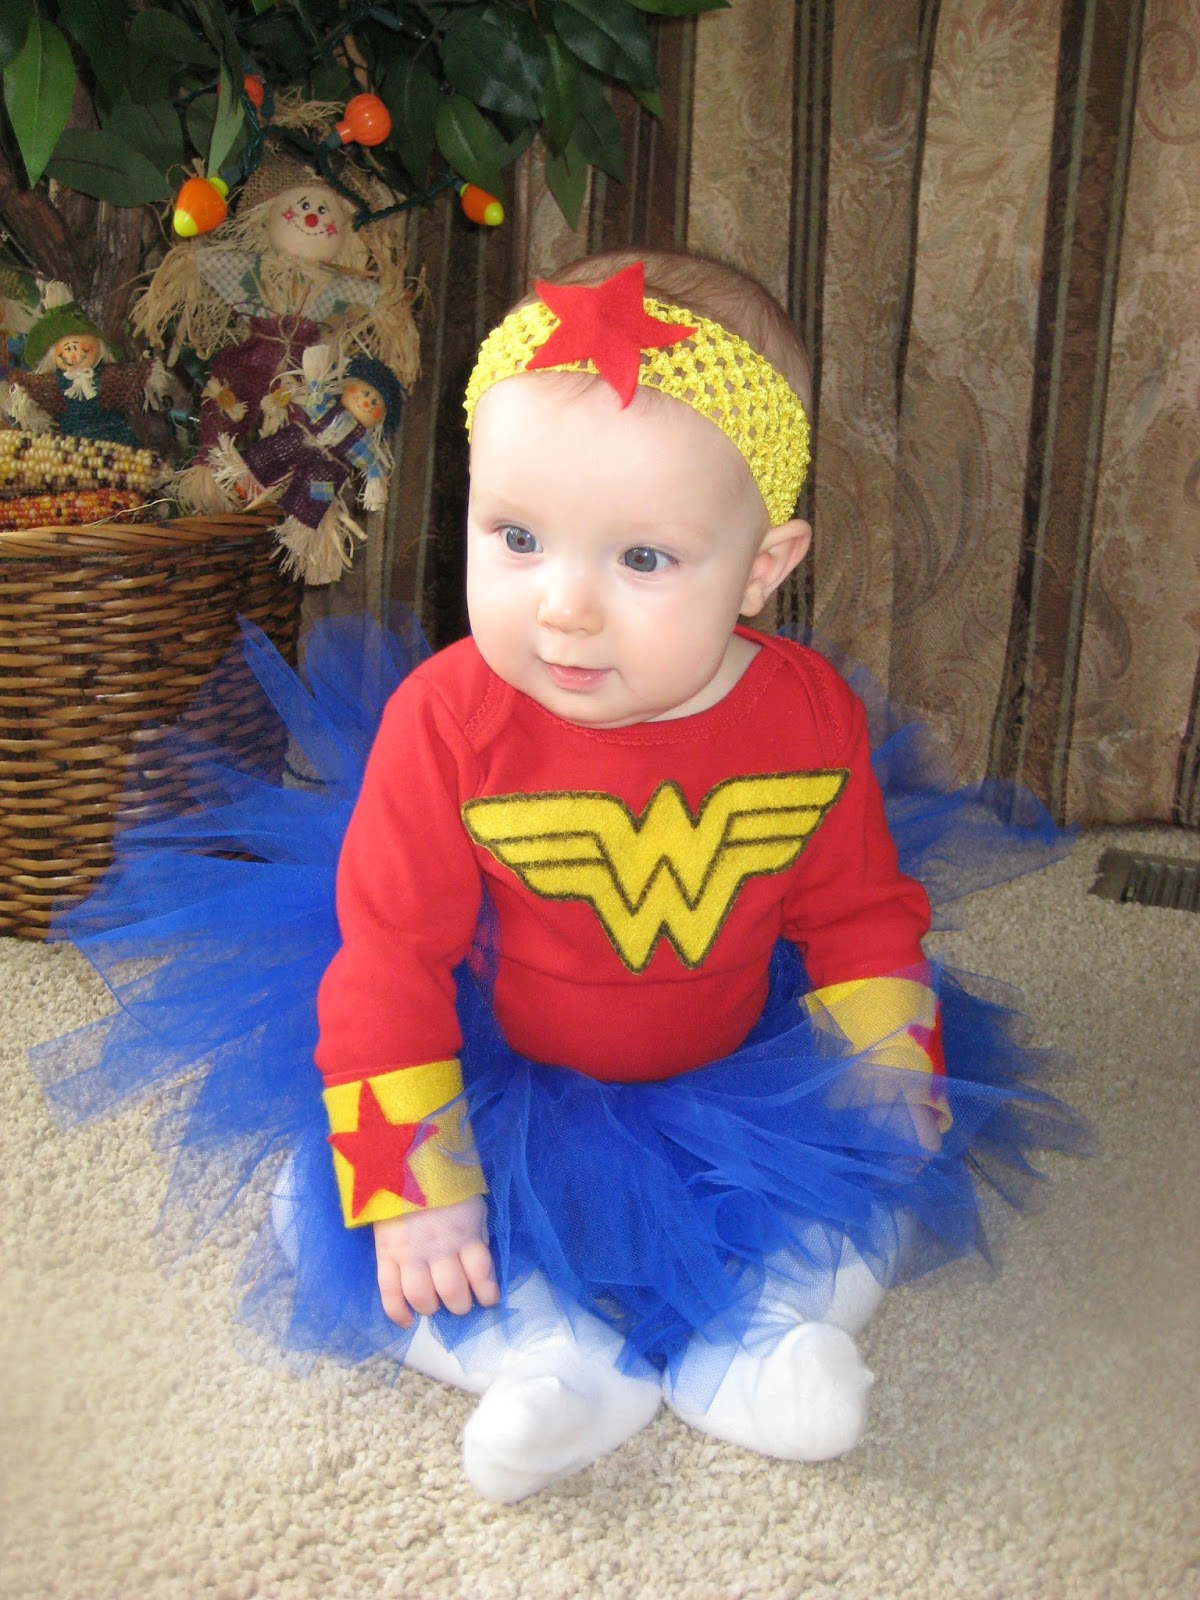 DIY Halloween Costumes for Kids and Toddlers - Wonder Woman - www.sweetlittleonesblog.com